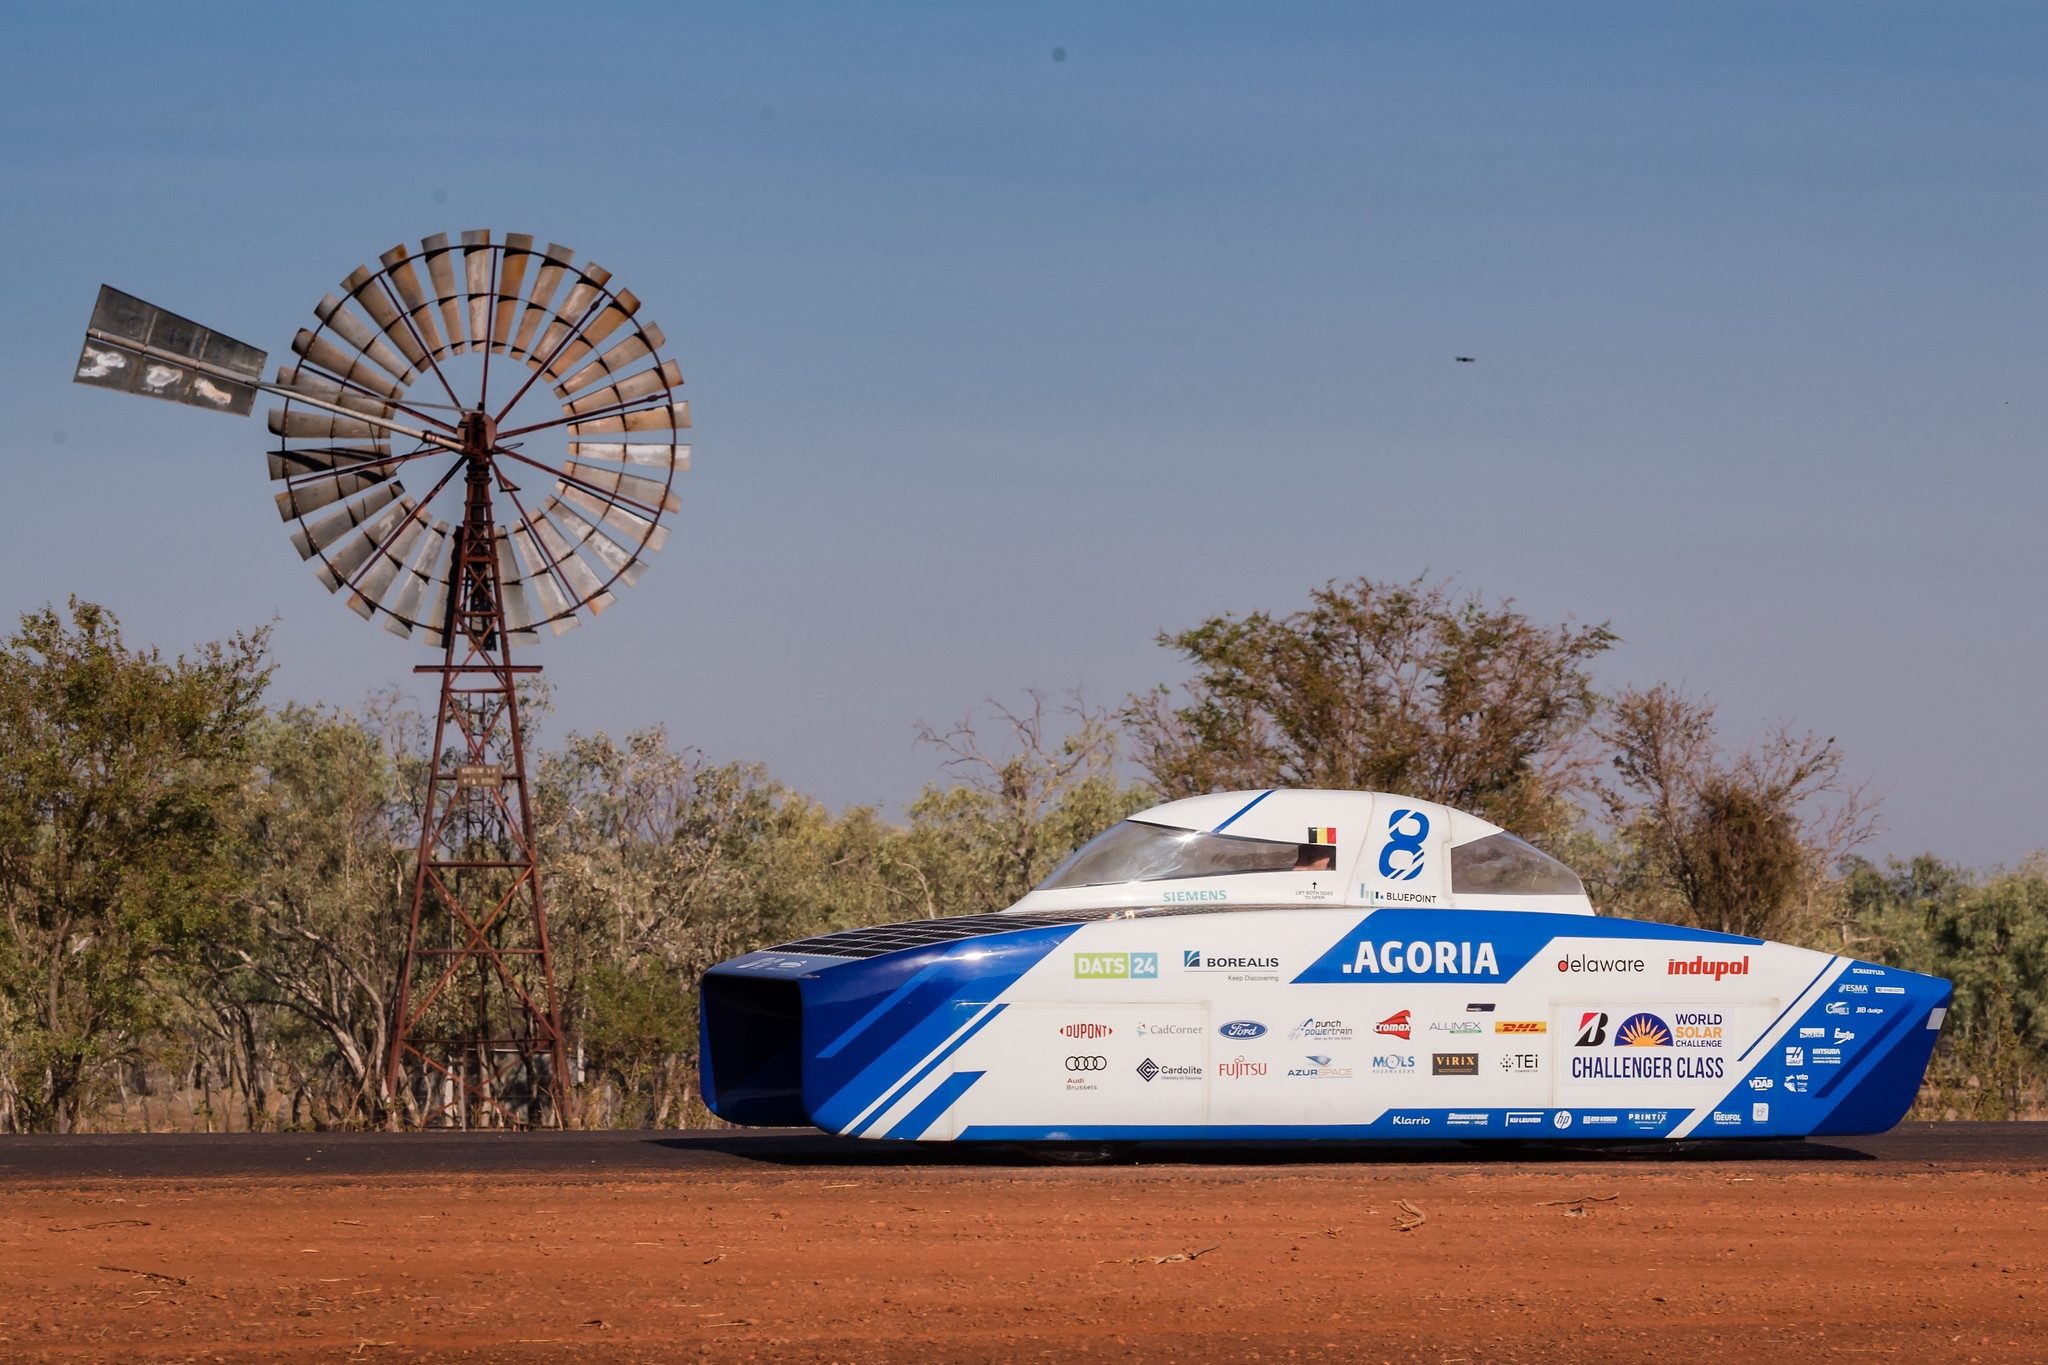 CX_Agoria_Solar_Team_BluePoint_wins_World_Solar_Challenge_1